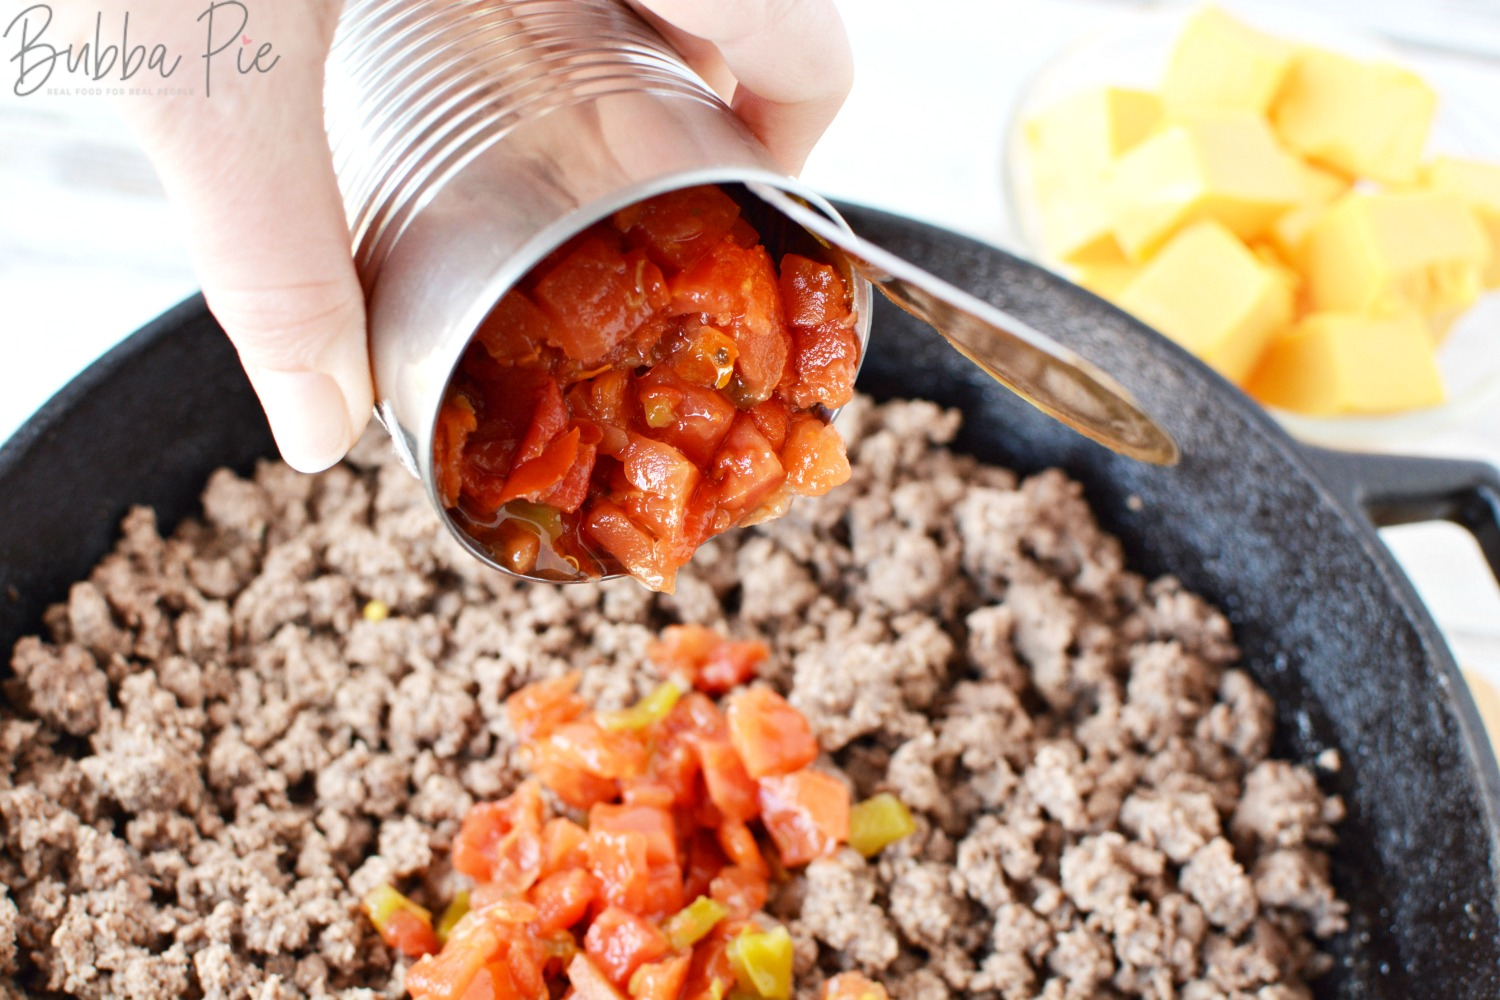 Rotel Dip Recipe has RO-TEL tomatoes that already have the chilis in them!